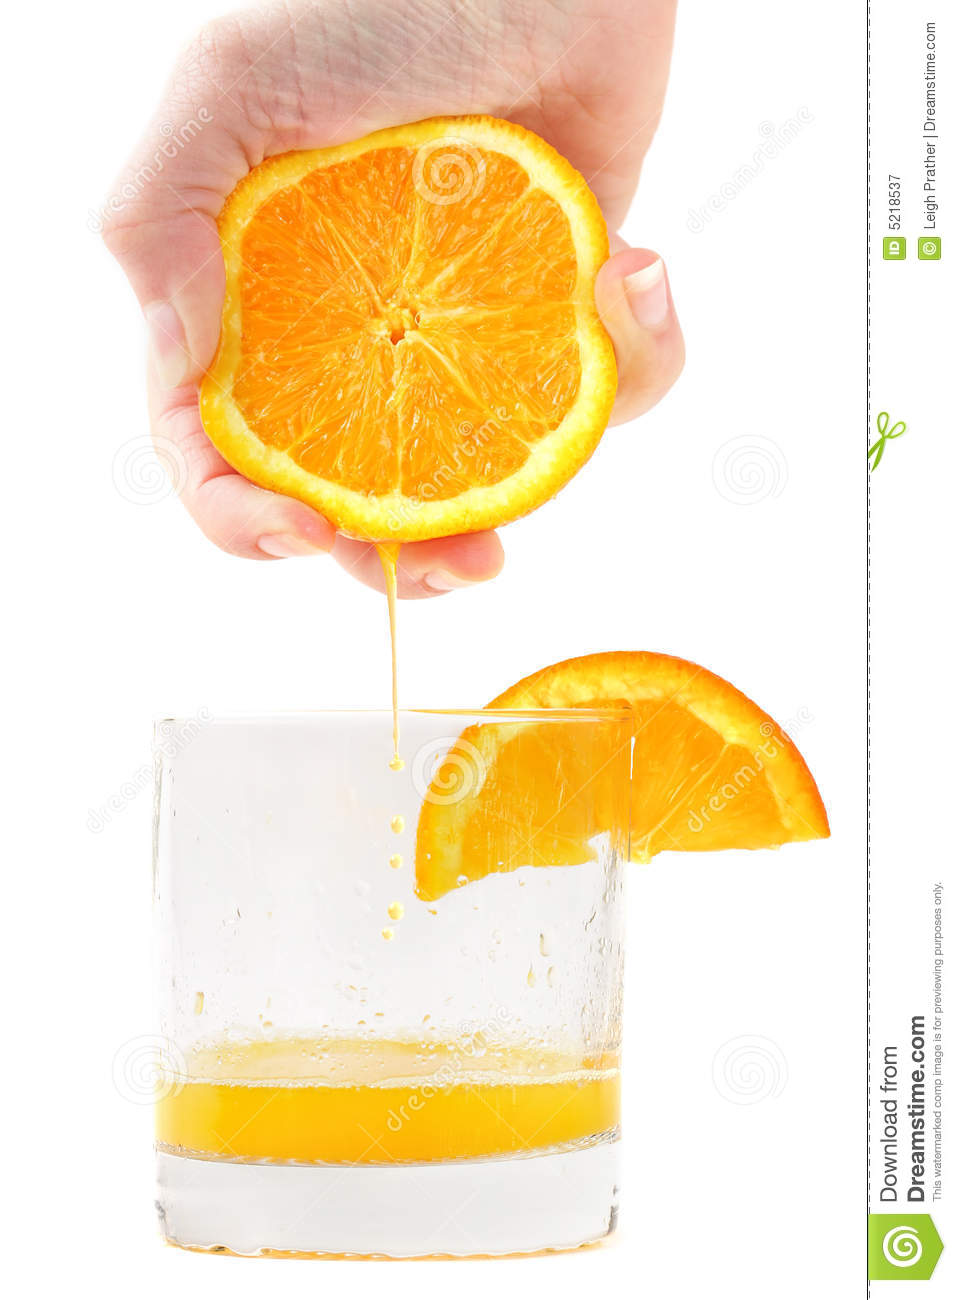 Fresh Squeezed Orange Juice Royalty Free Stock Photography